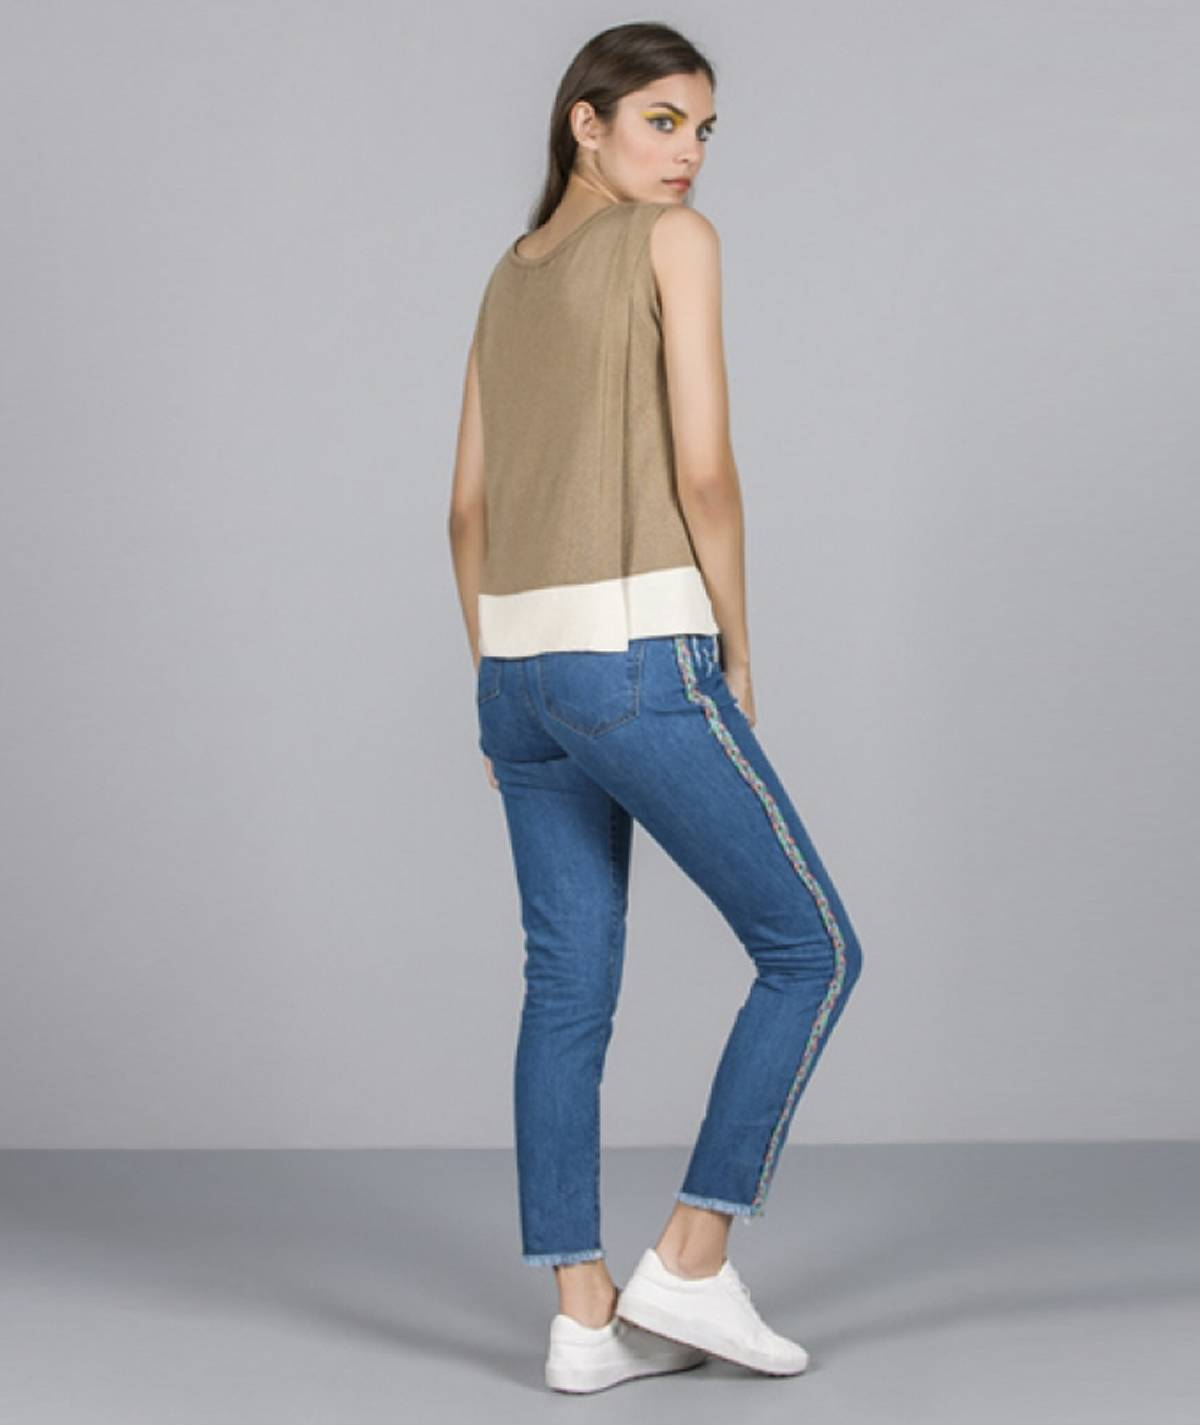 Jeans with side application